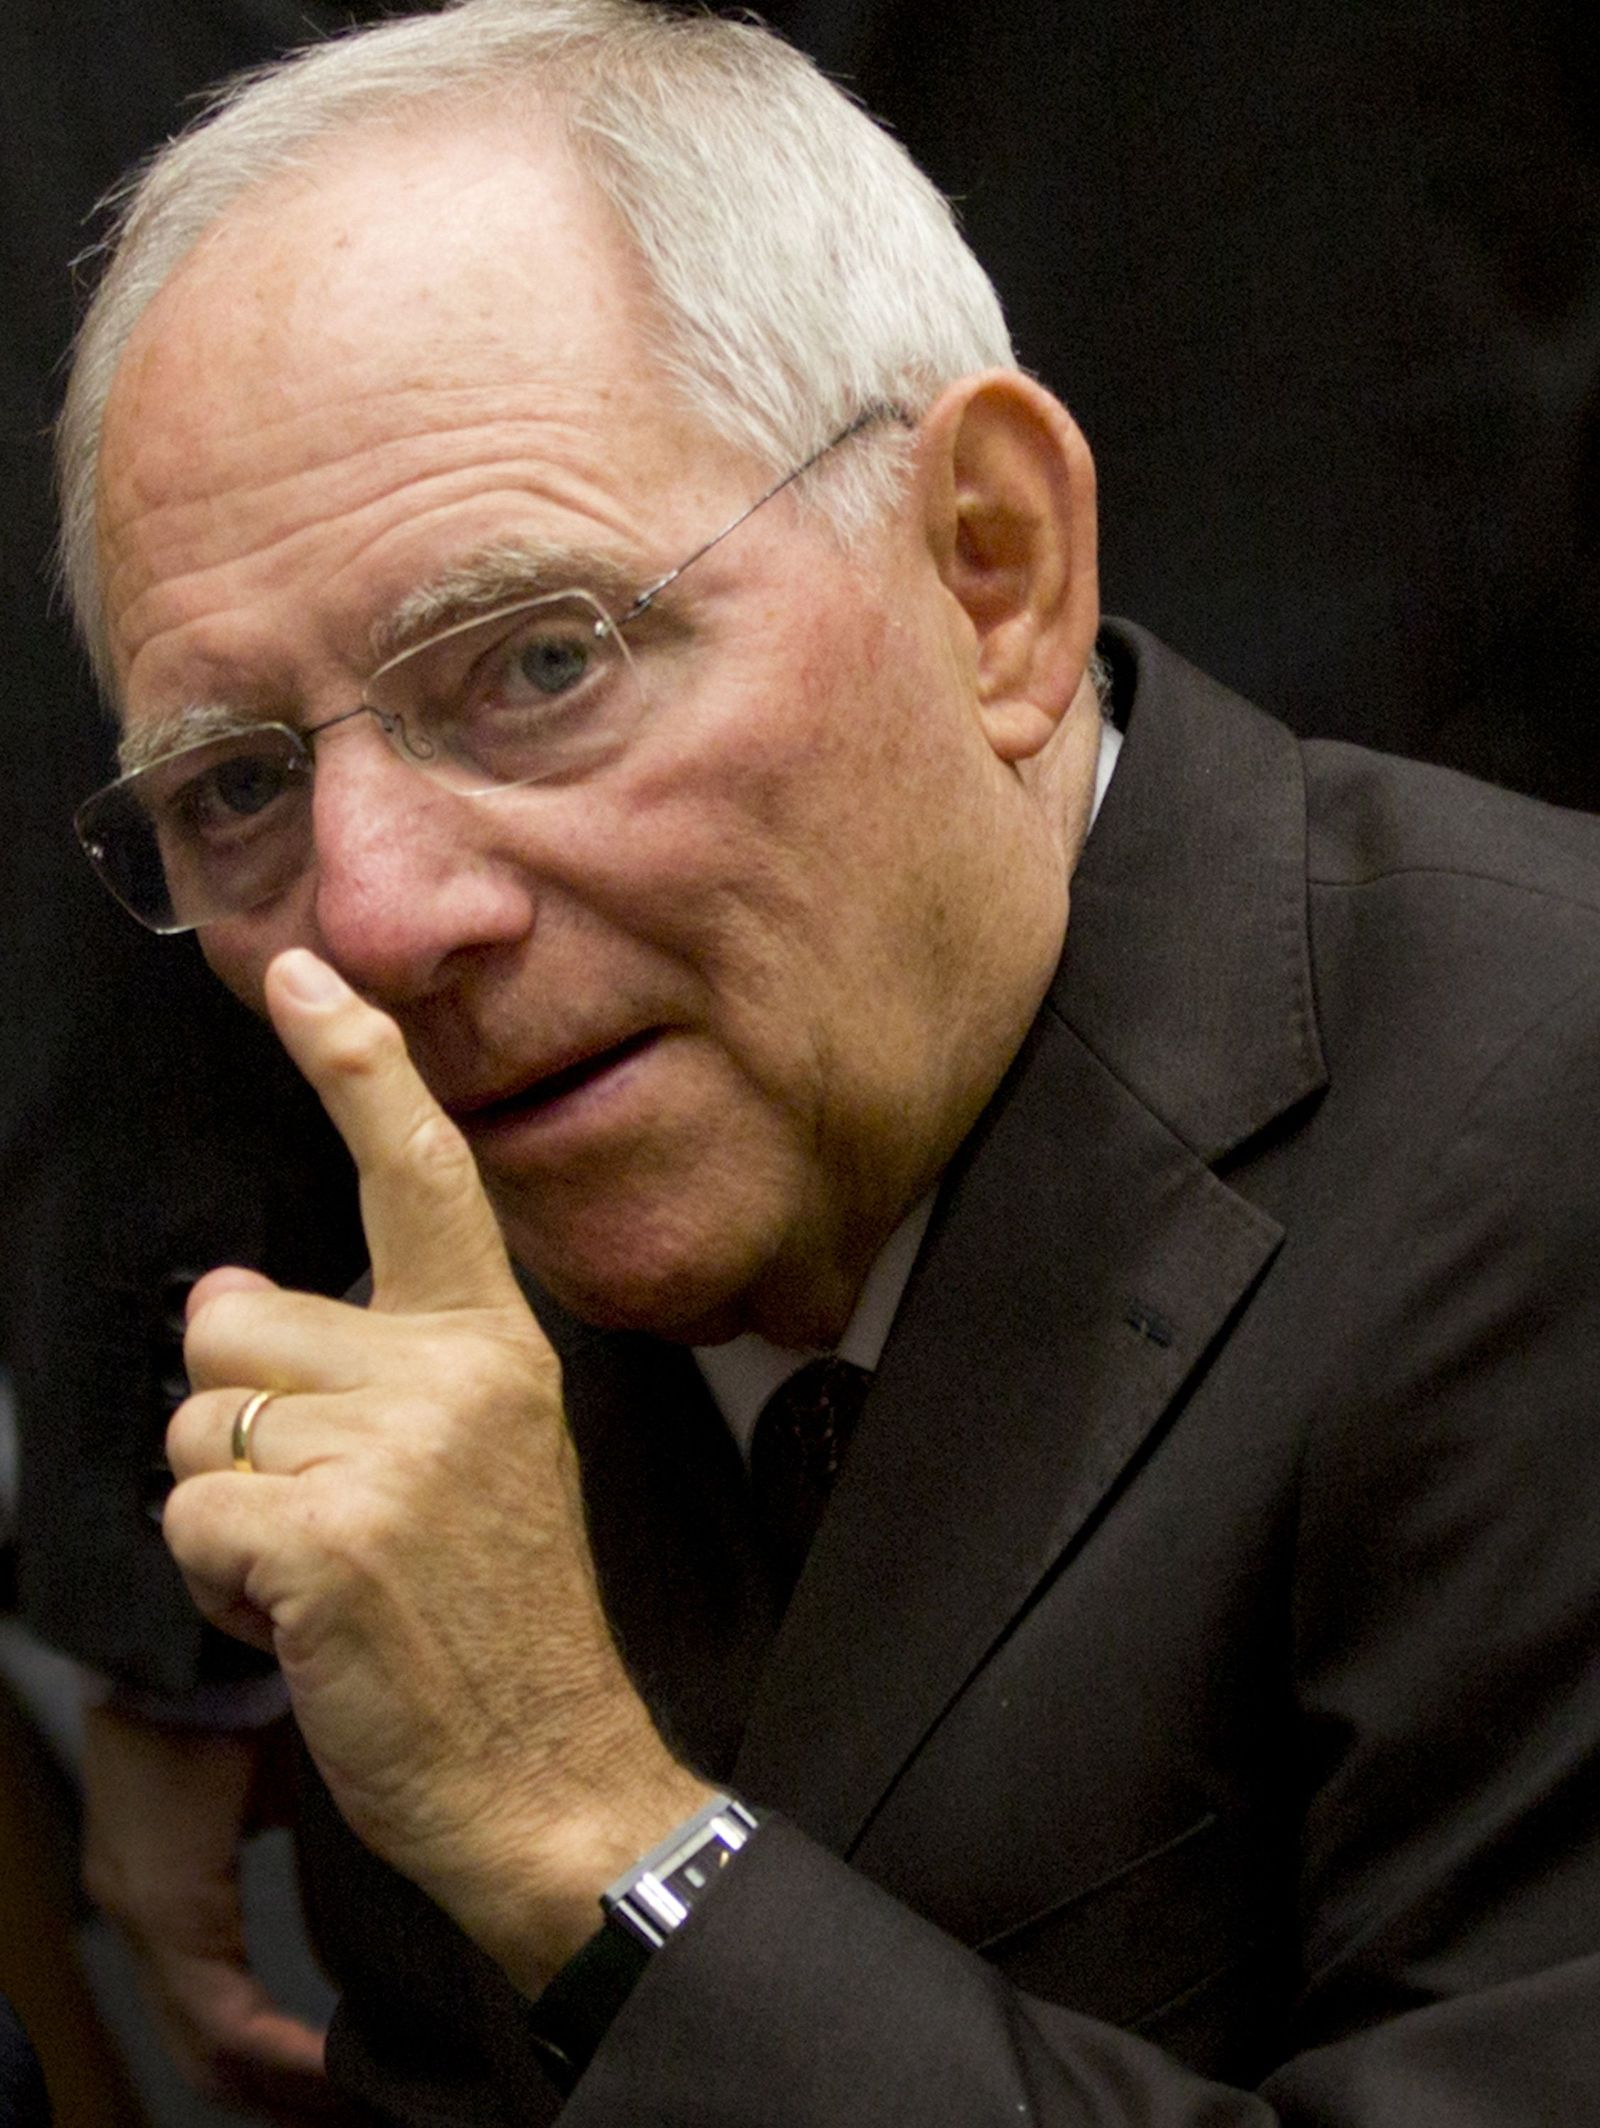 Minister Wolfgang Schäuble